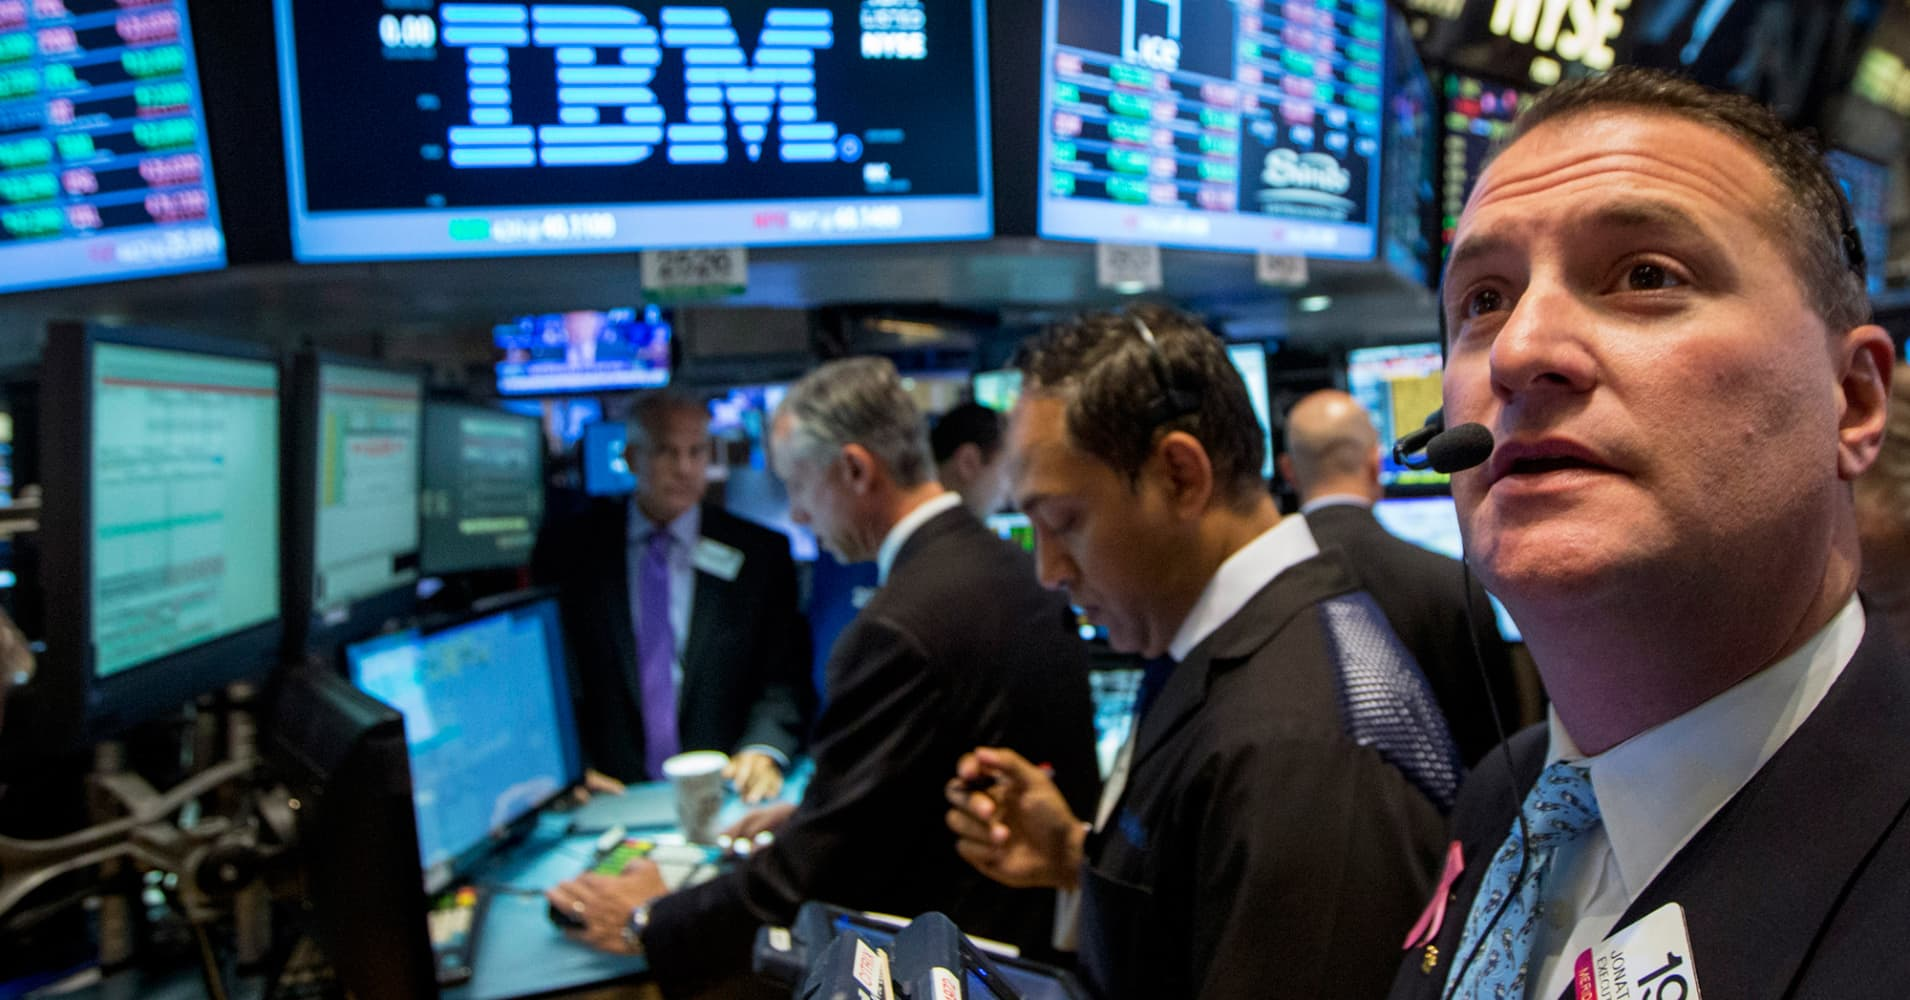 Traders gather at the post that trades IBM on the floor of the New York Stock Exchange, Oct. 20, 2014.